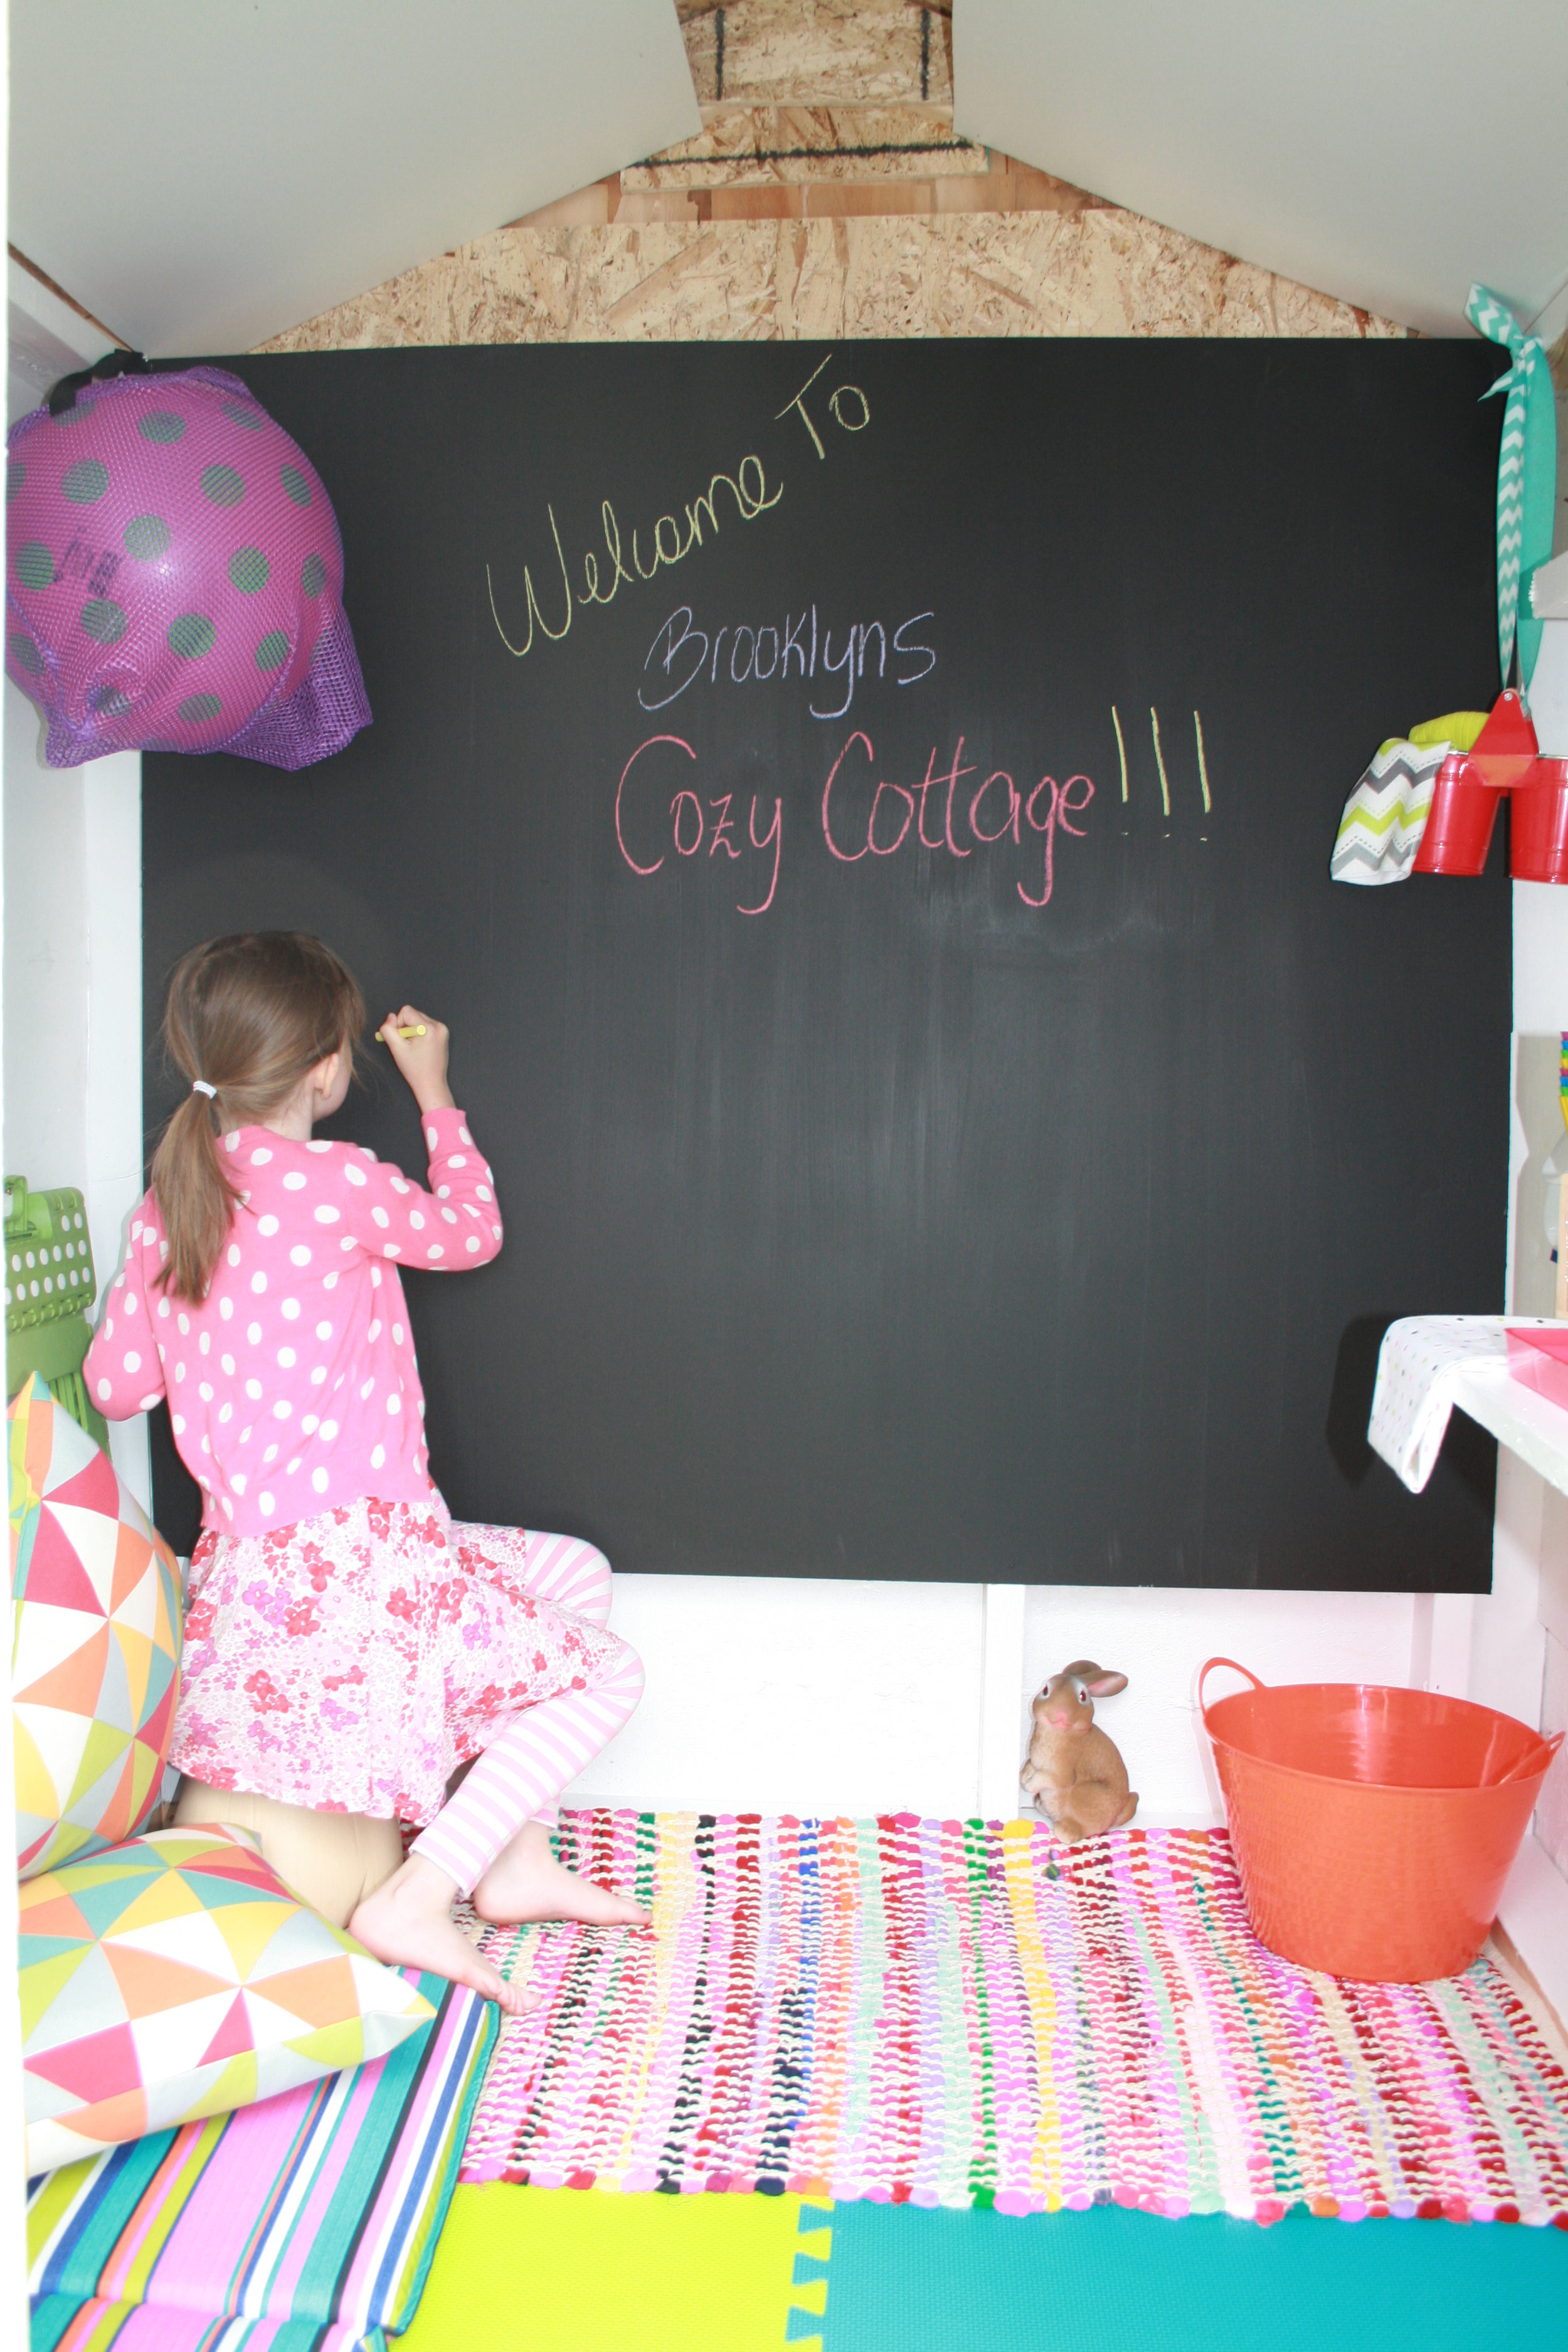 We used chalkboard paint to fill the whole back wall for a place to write, draw and get silly:)